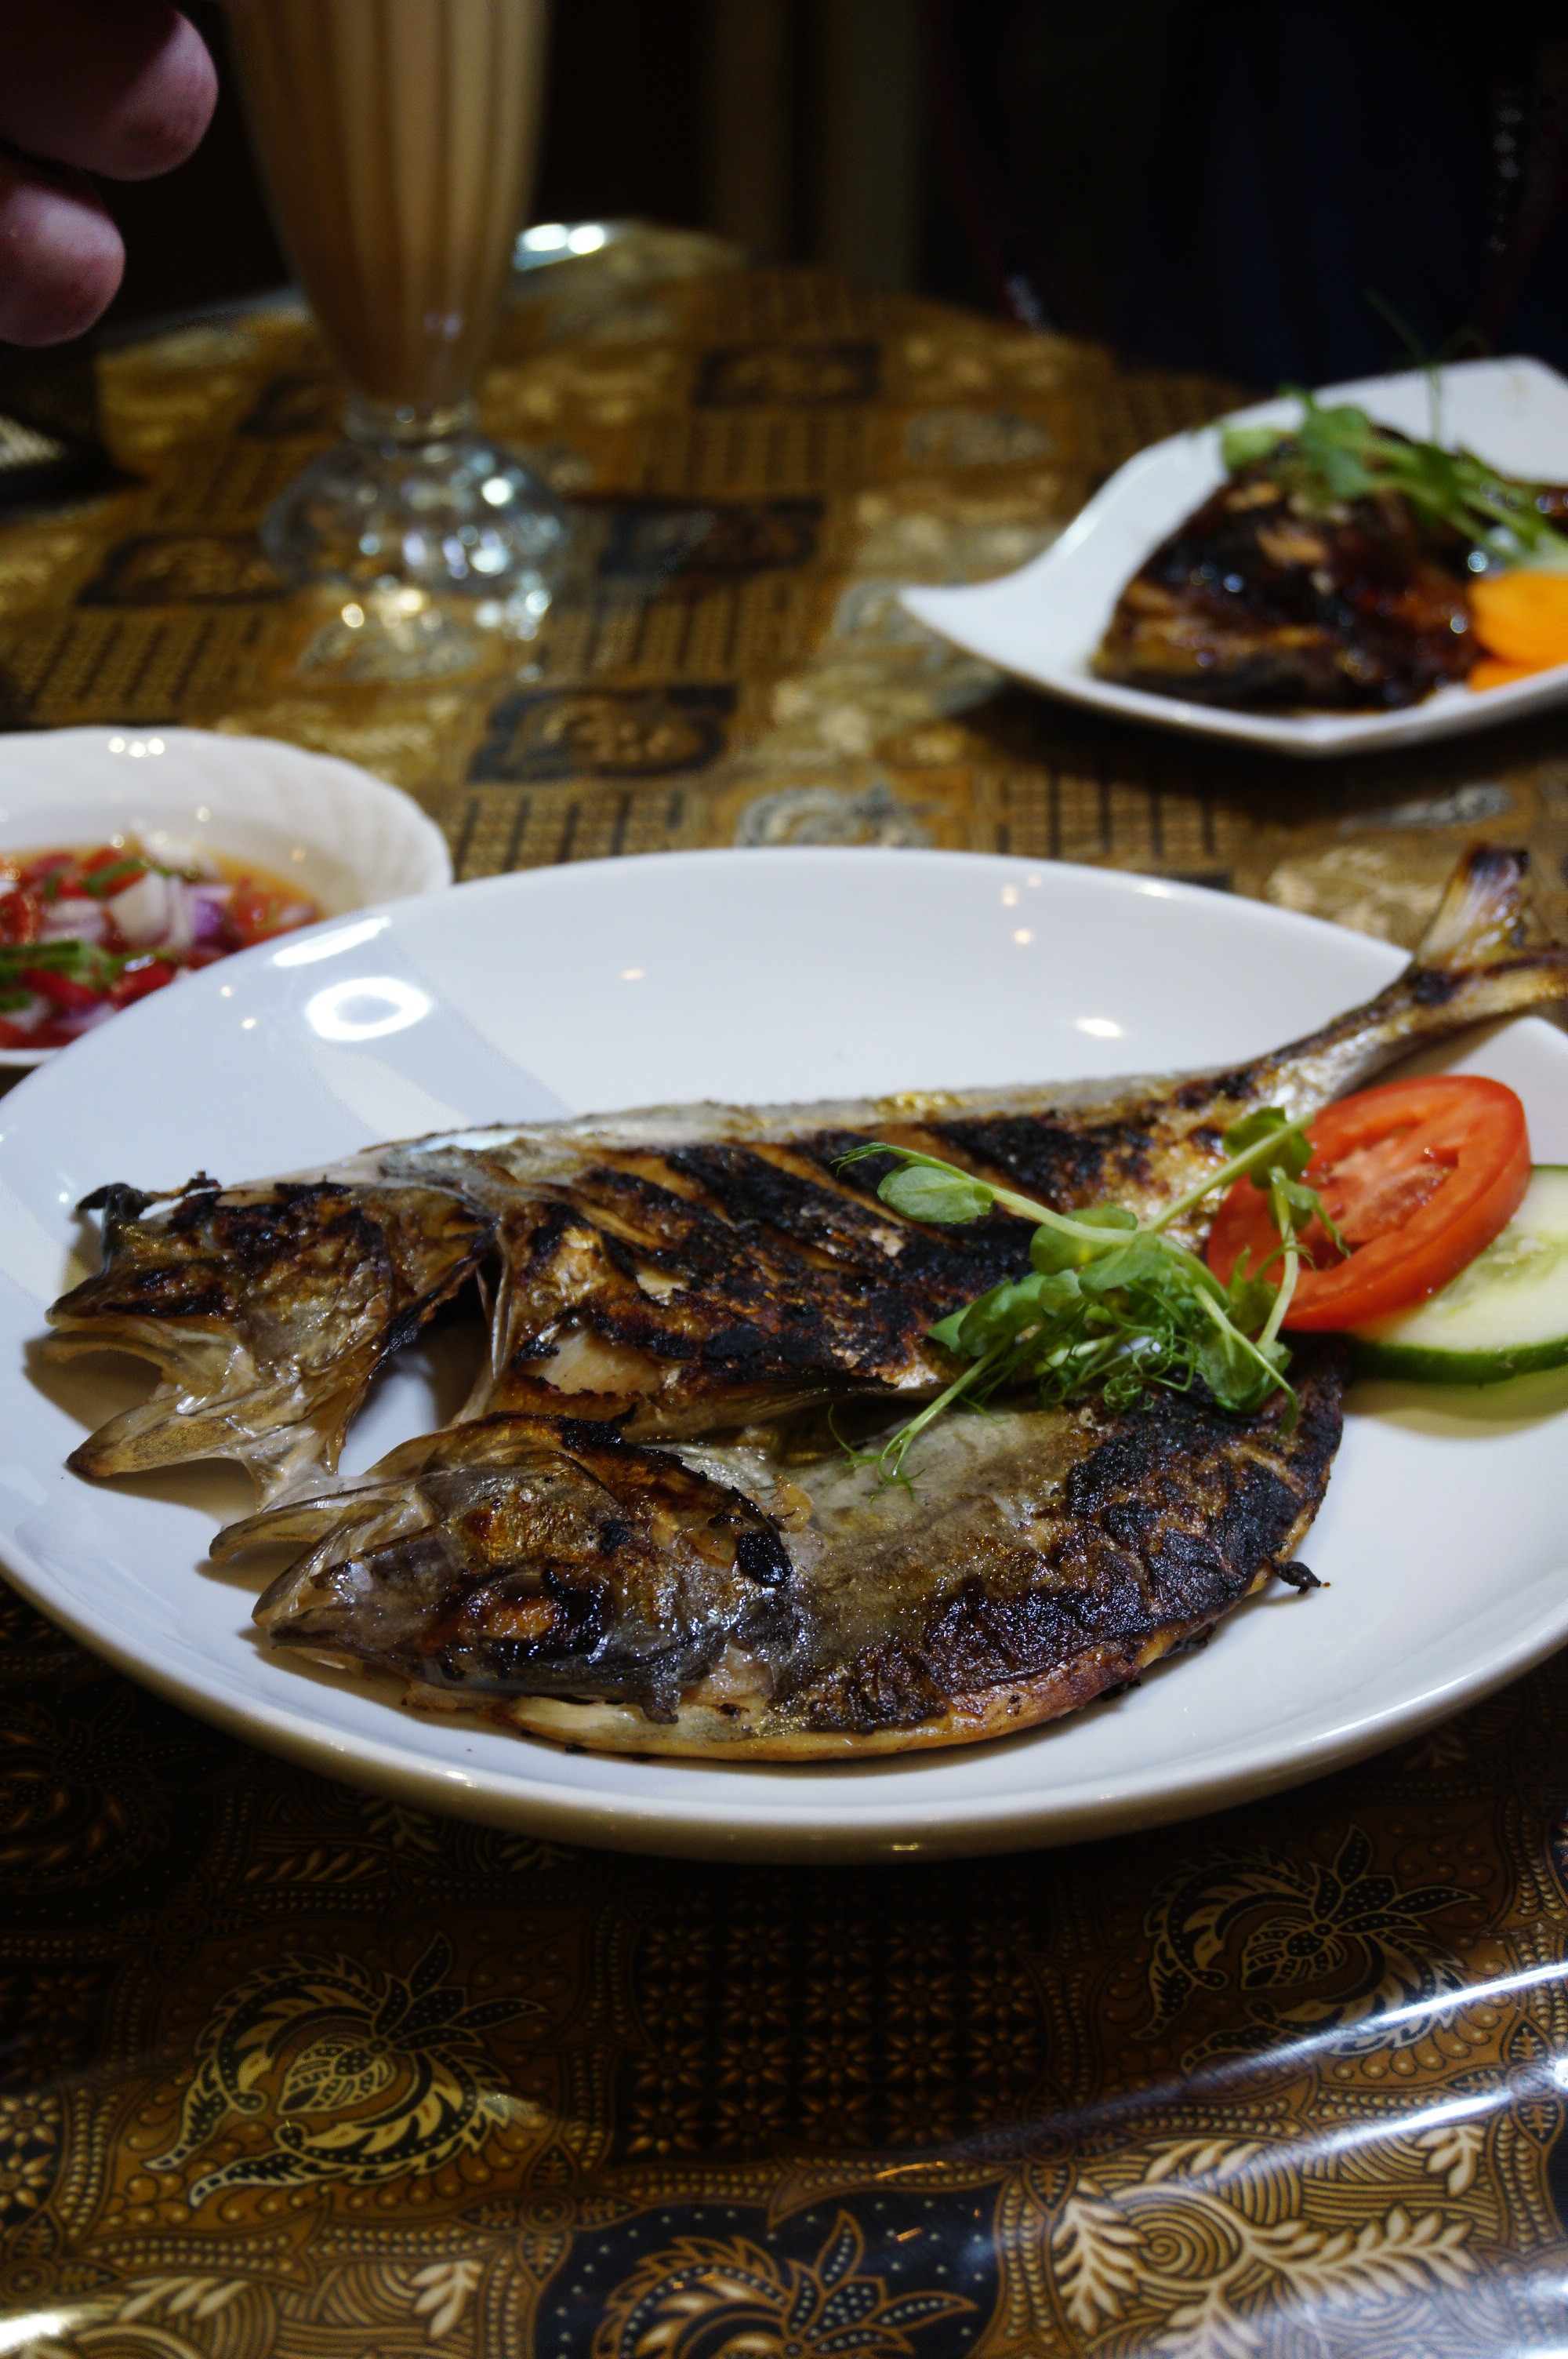 Grilled whole fish / Ikan Bakar